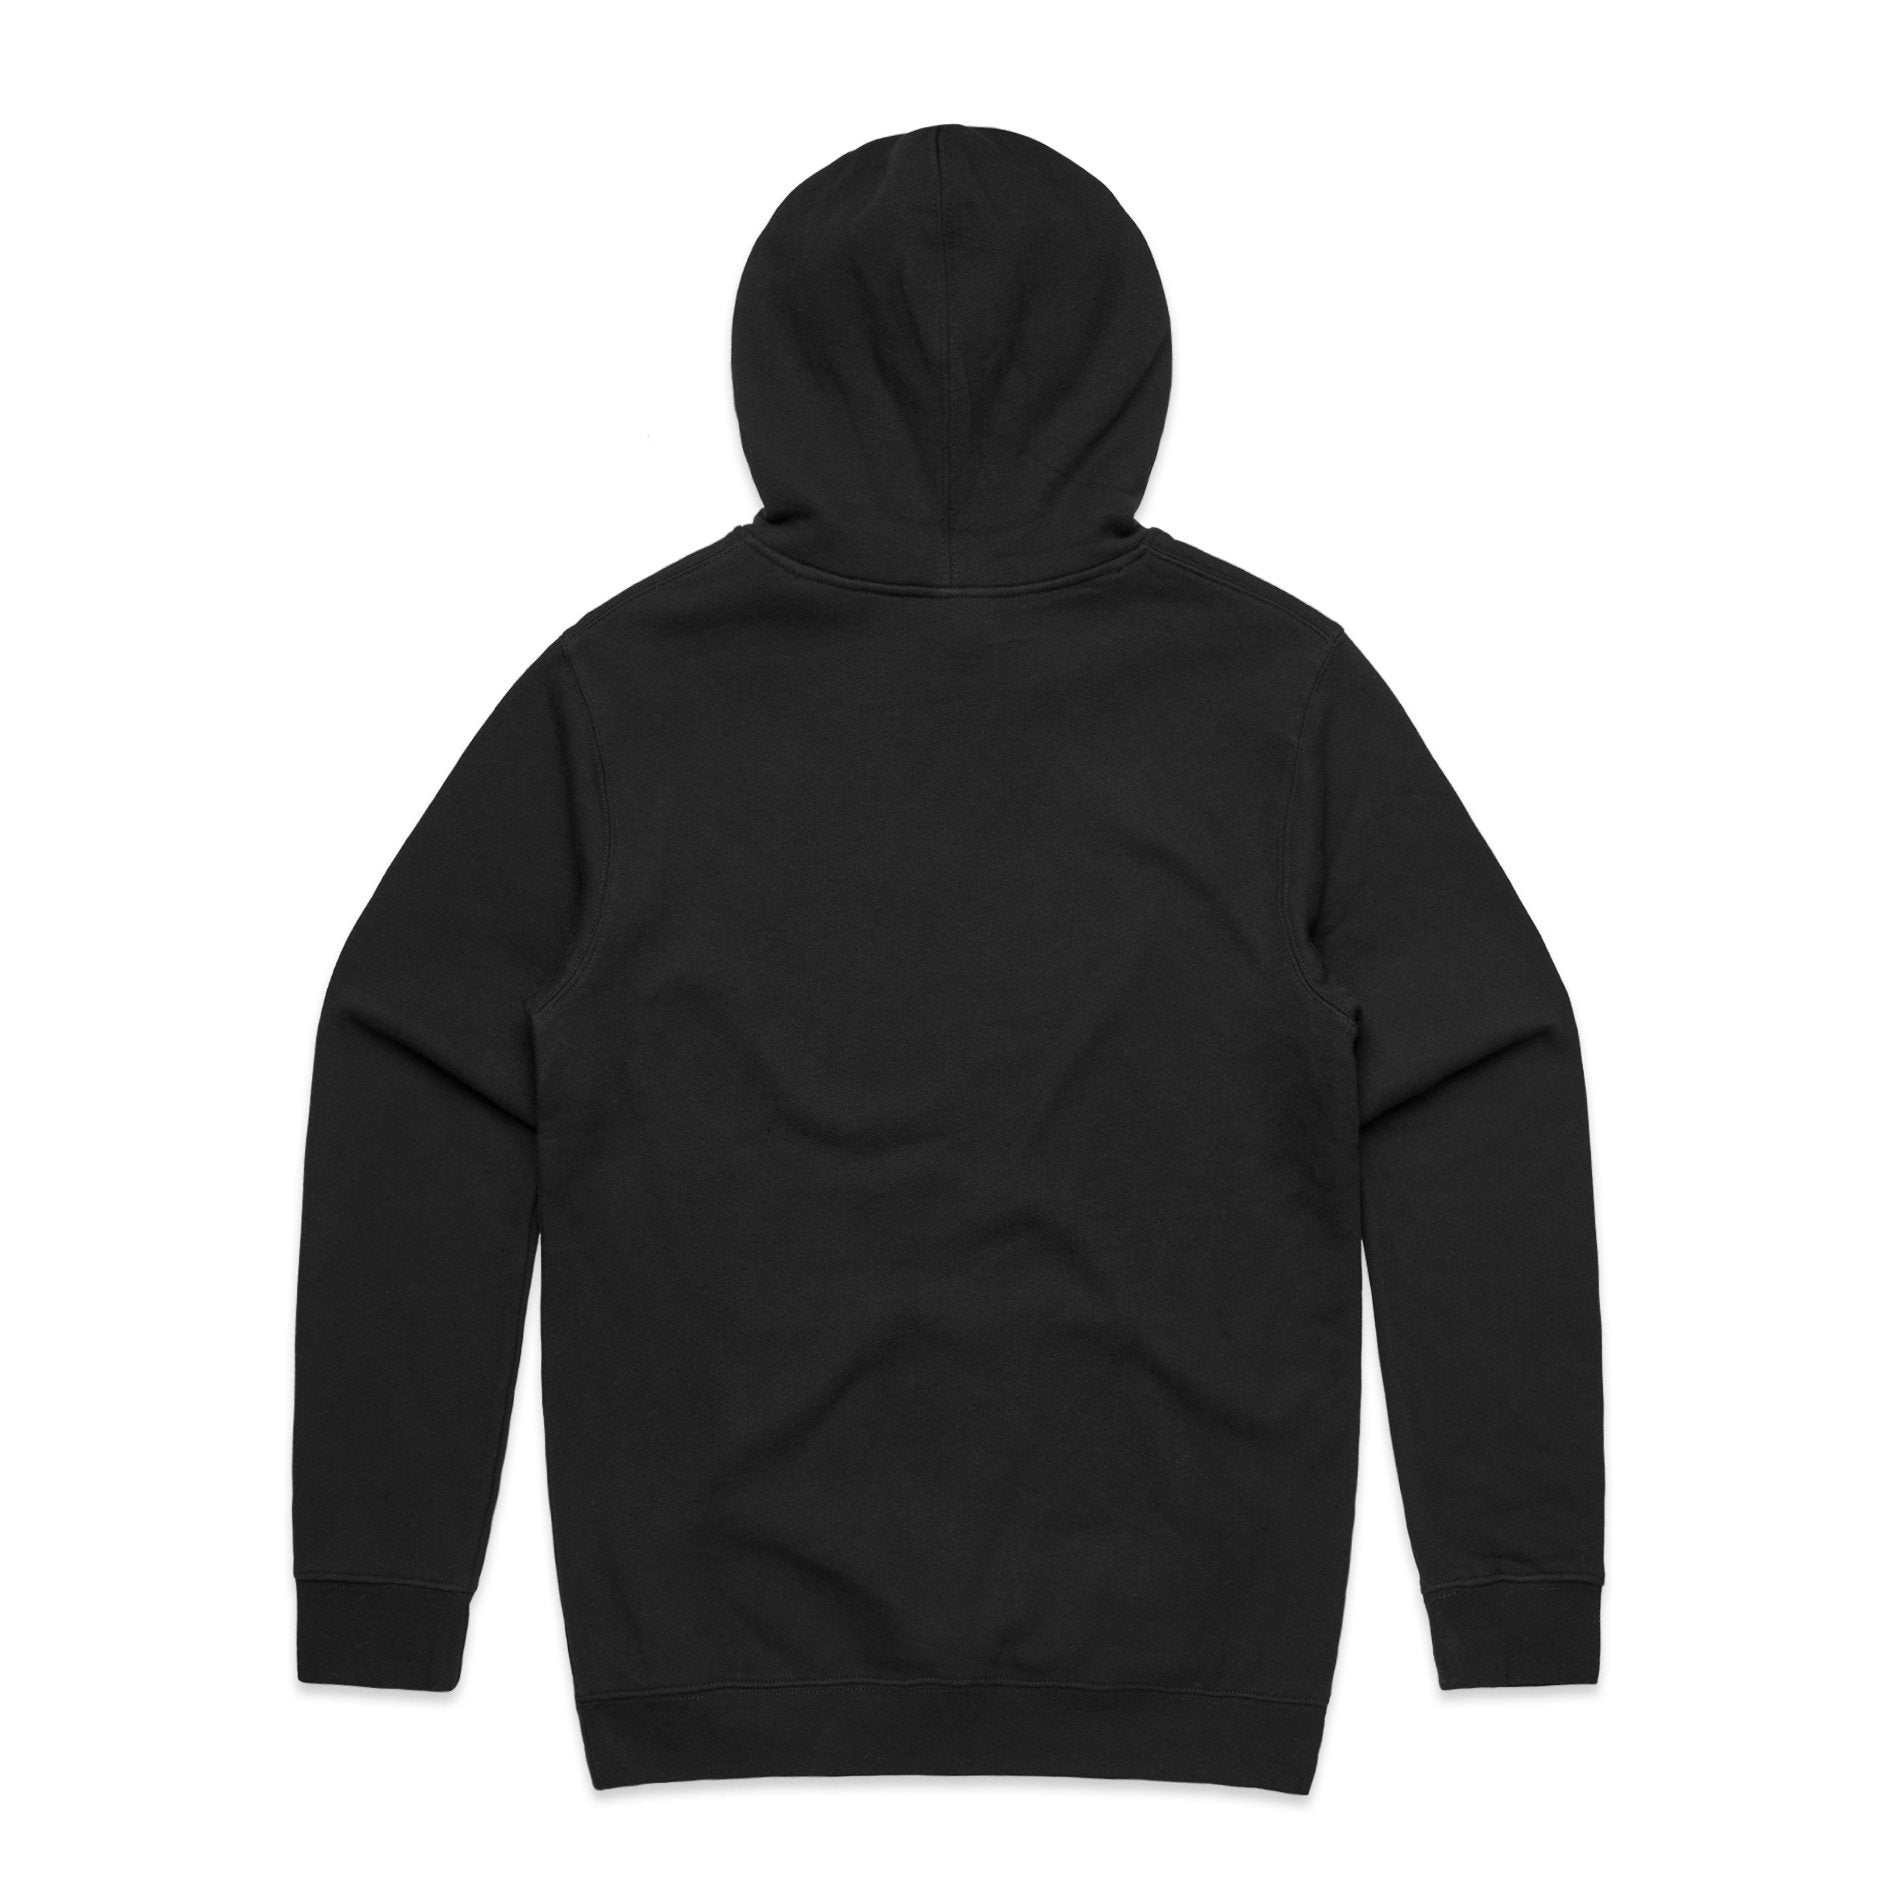 Black Basic Hoodie with USA Flag